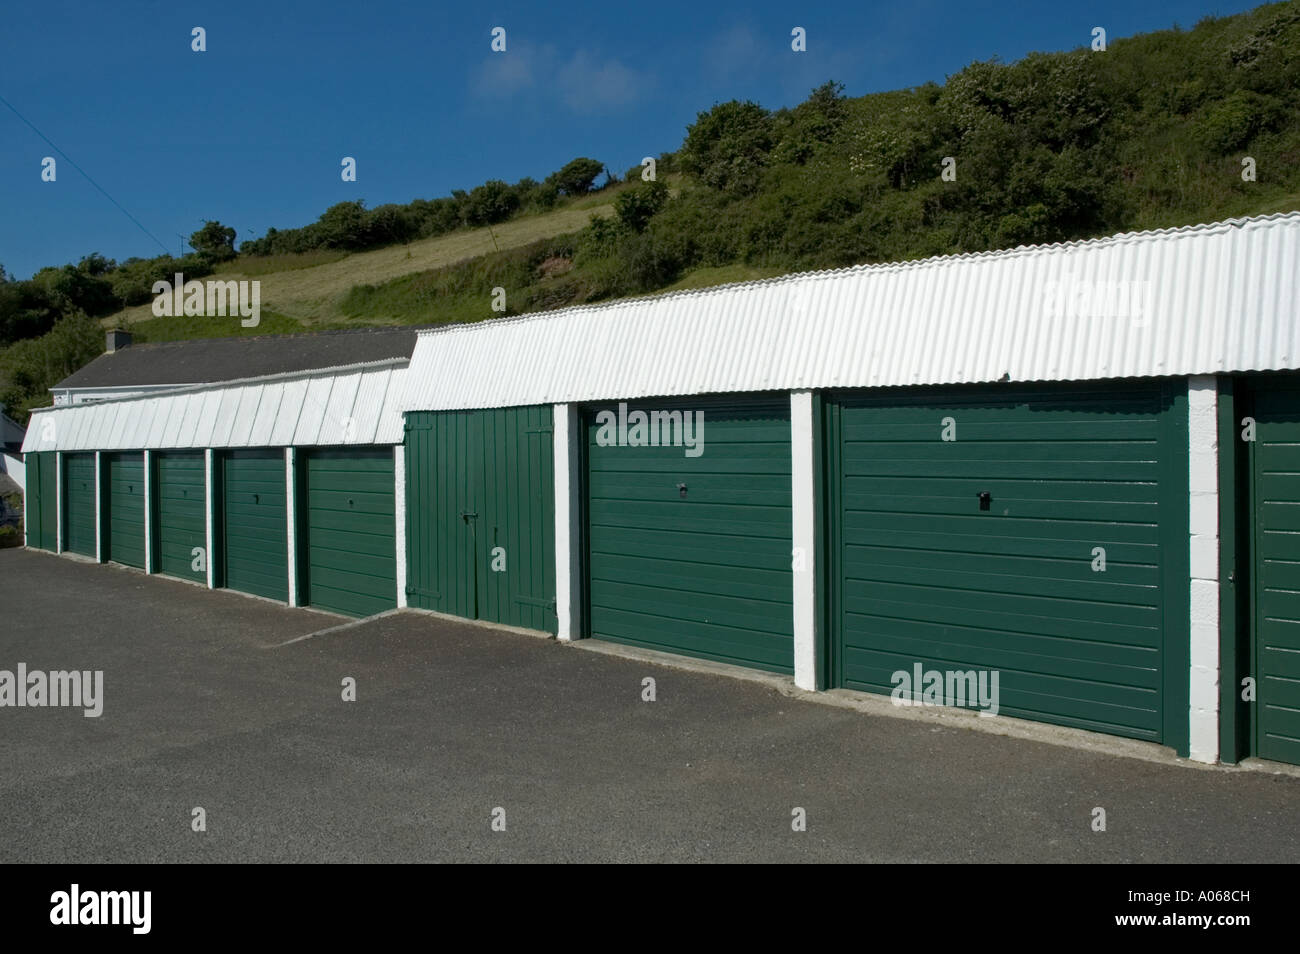 a row of lock up garages for rent in portloe in cornwall,england - Stock Image